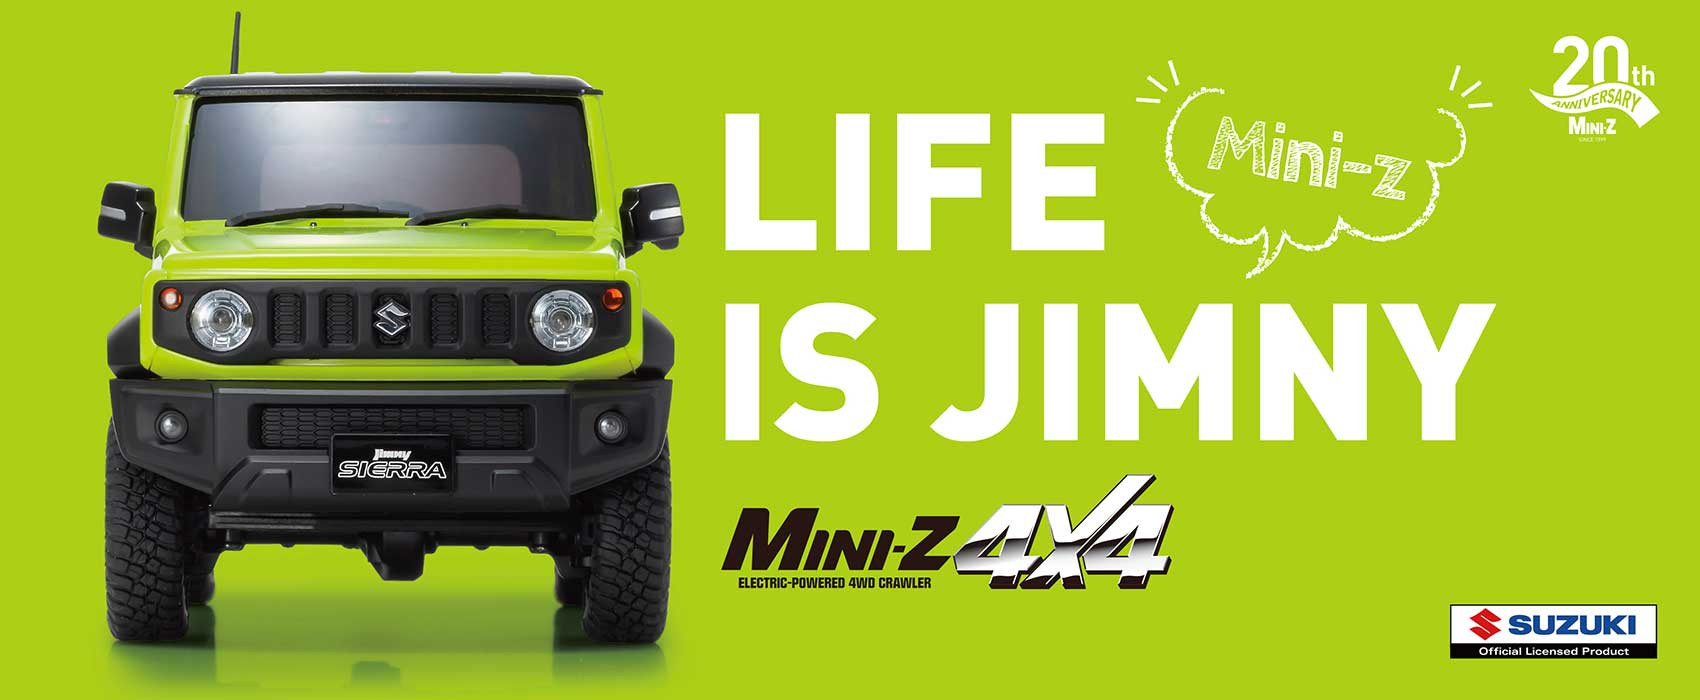 Mini Z 4x4 Suzuki Jimmy